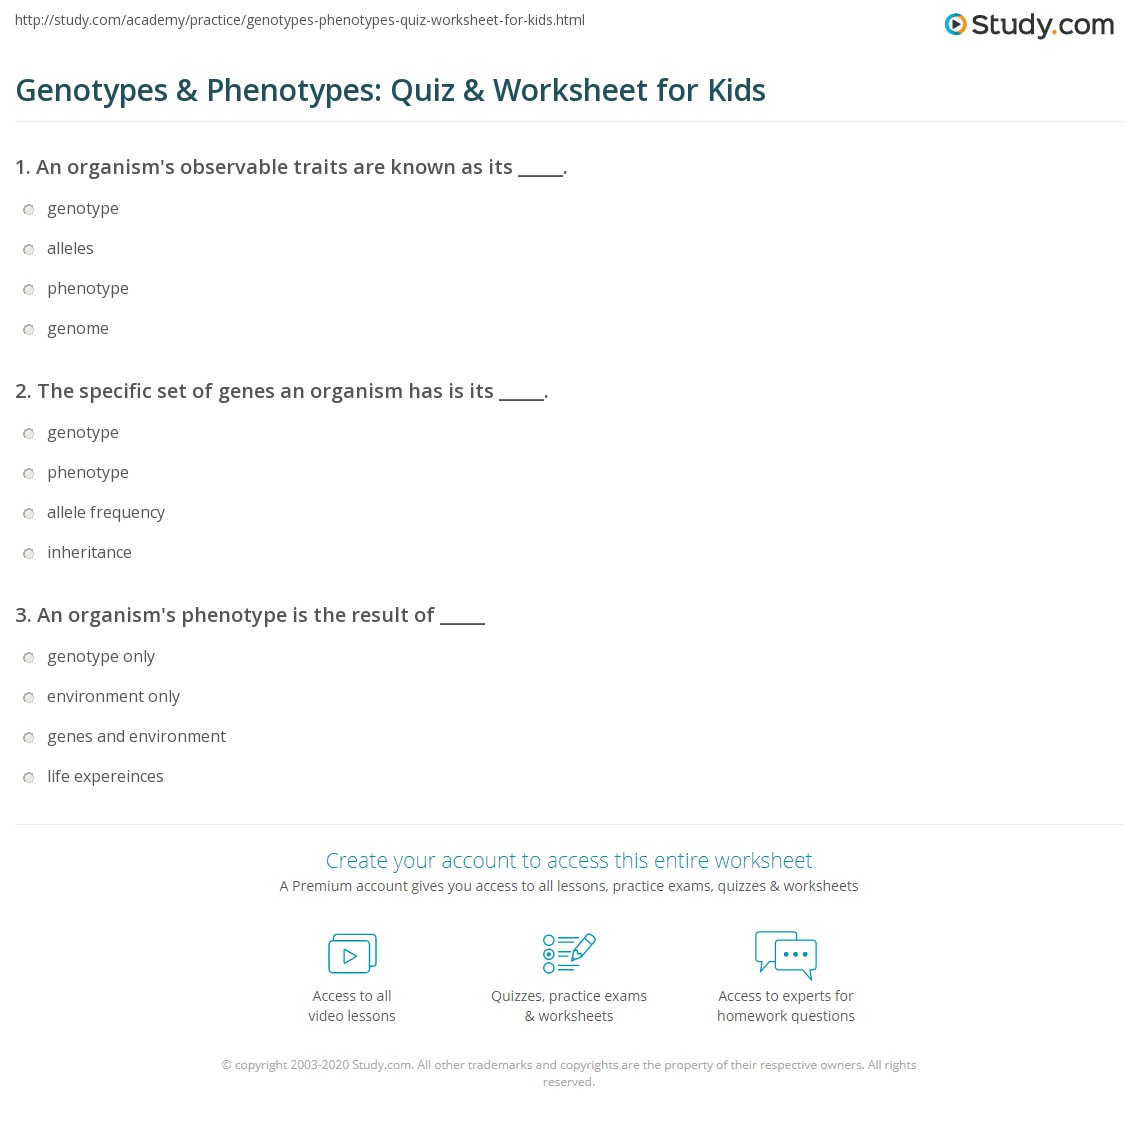 worksheet Genotype And Phenotype Worksheet genotypes phenotypes quiz worksheet for kids study com print genotype vs phenotype lesson definitions examples worksheet